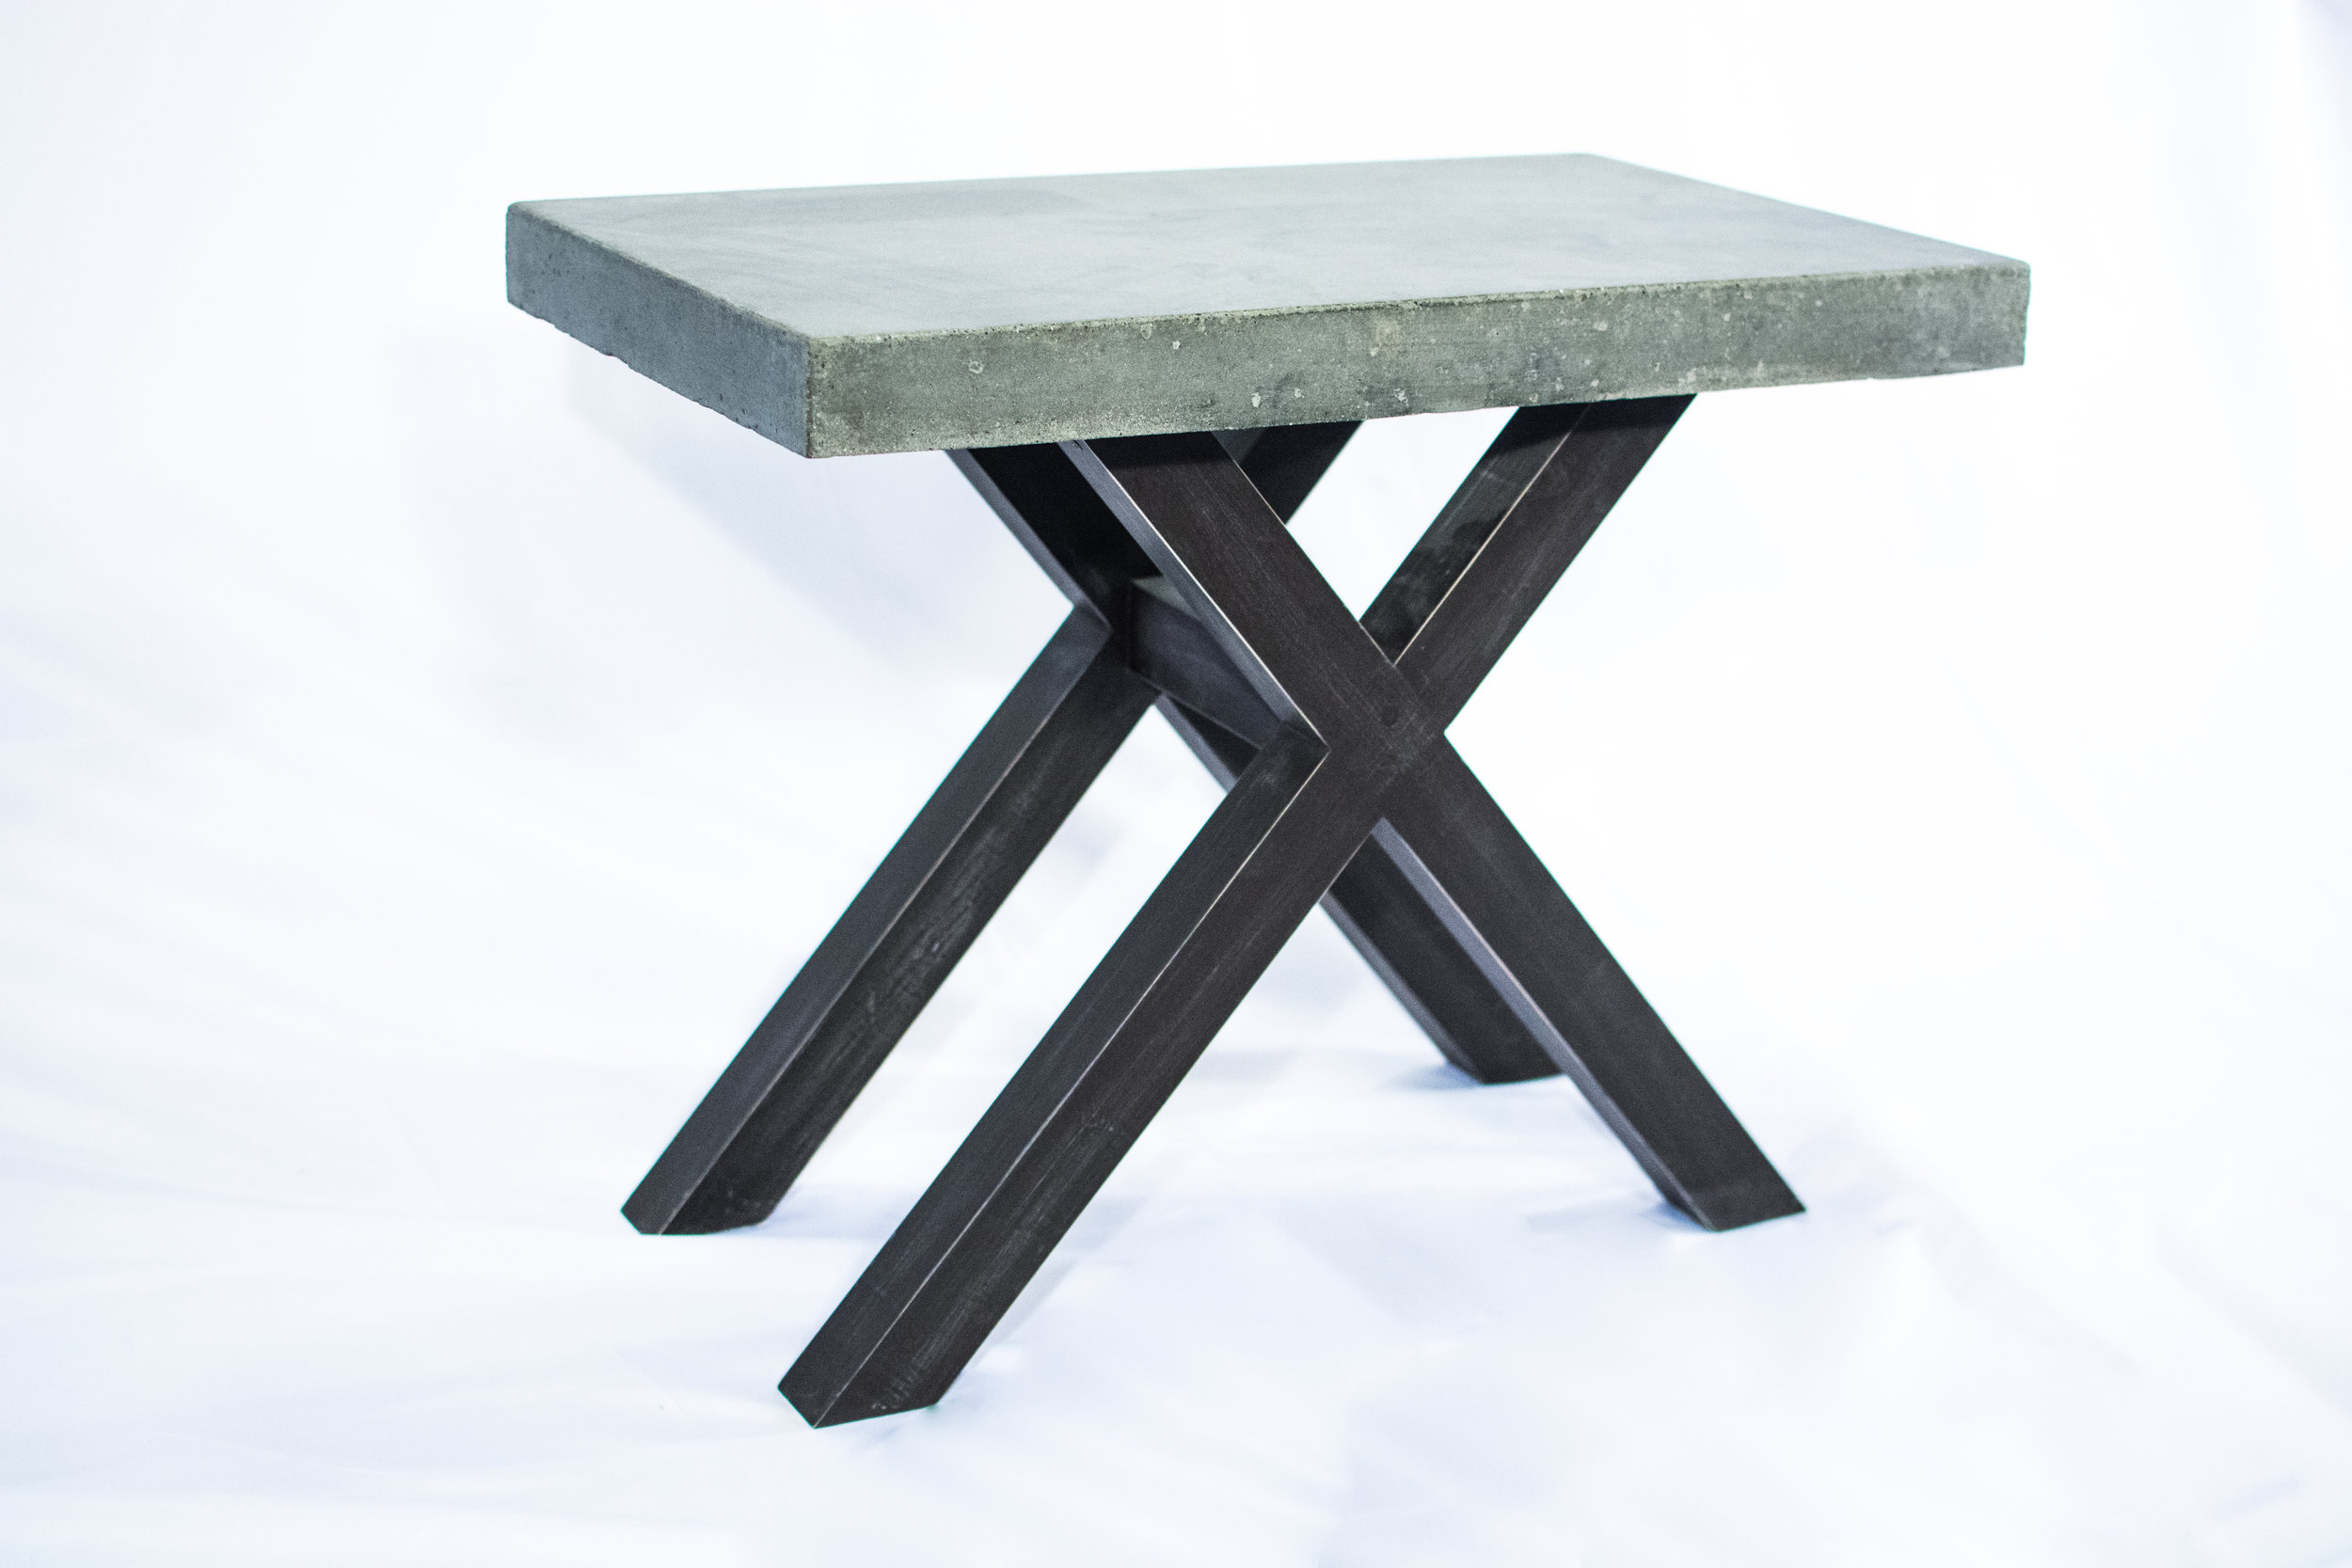 concrete end table with wooden legs